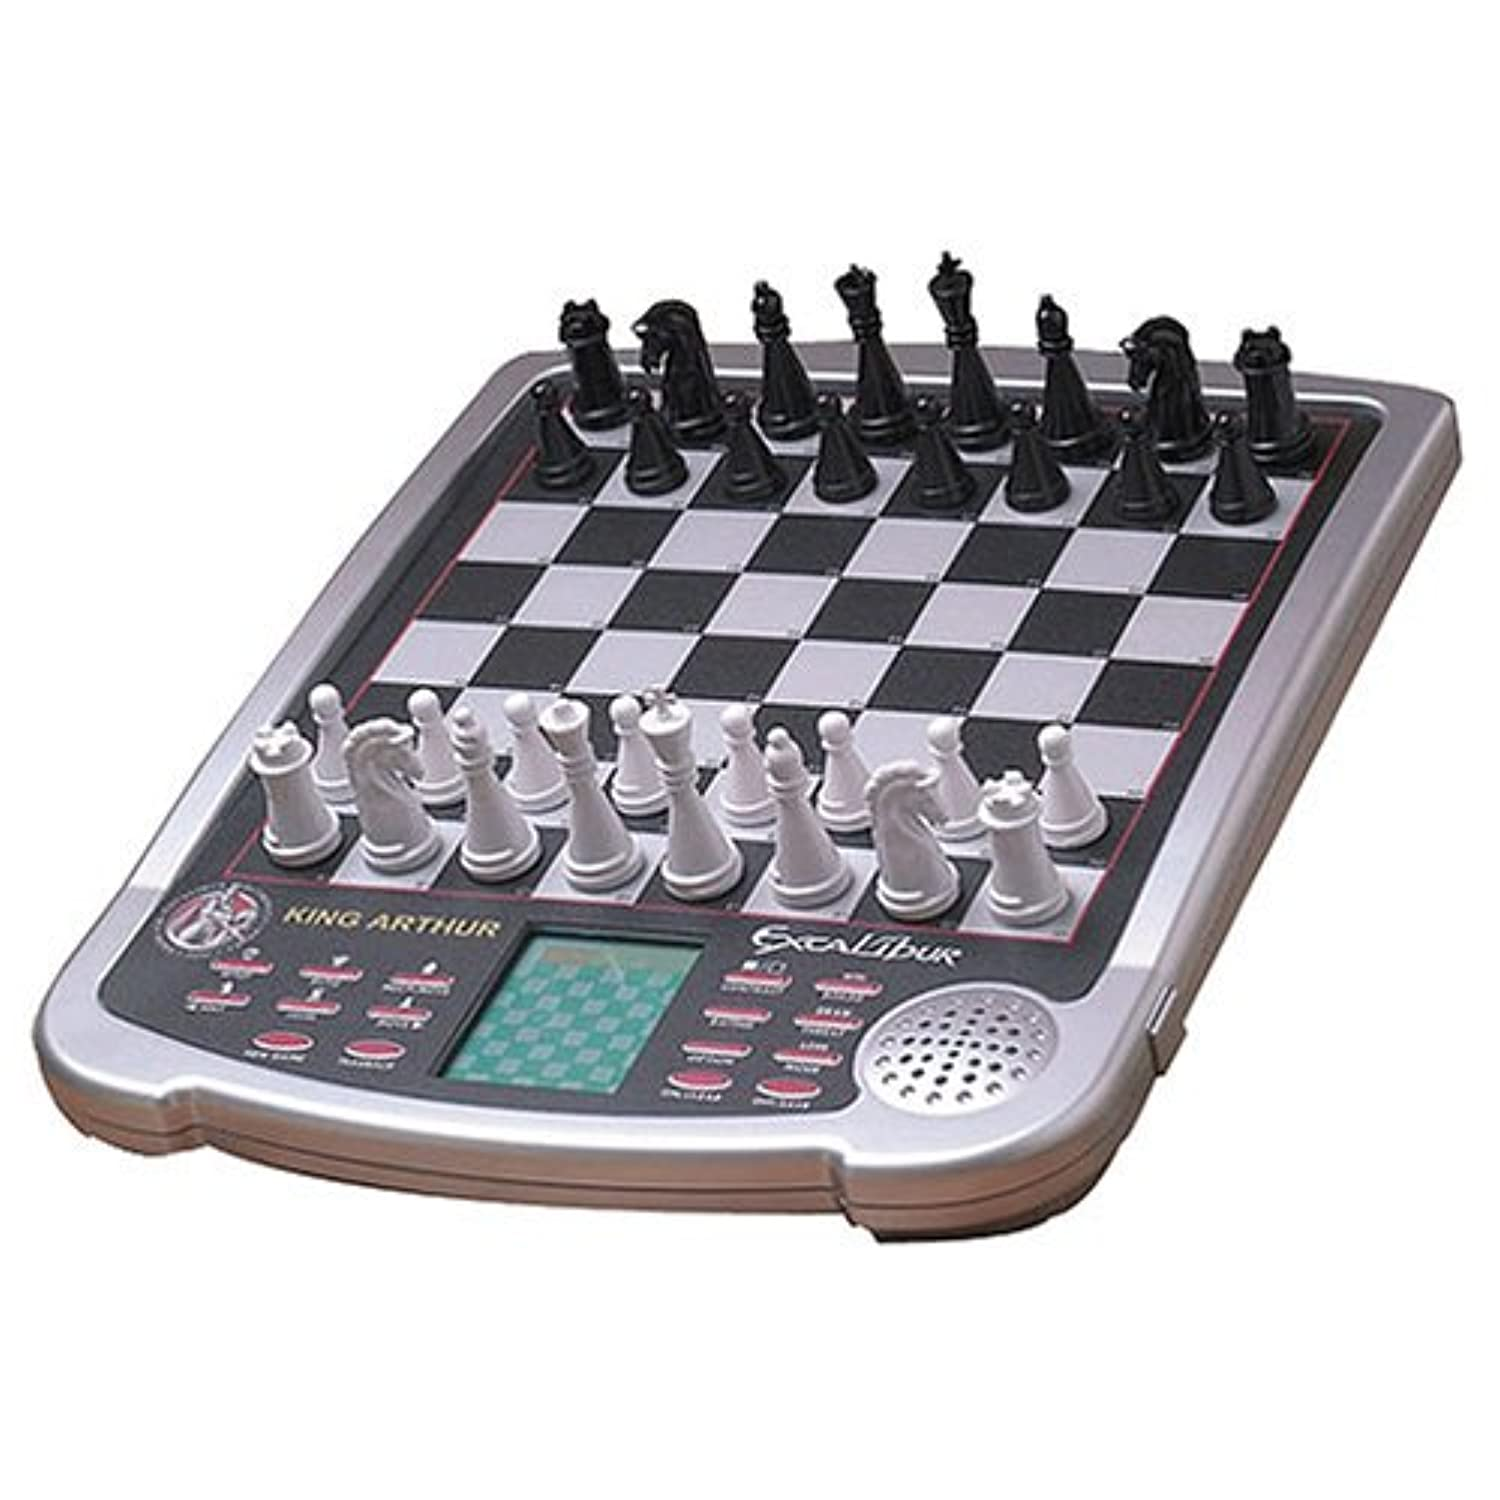 EXCALIBUR ELECTRONIC 915-2 King Arthur Electronic Chess